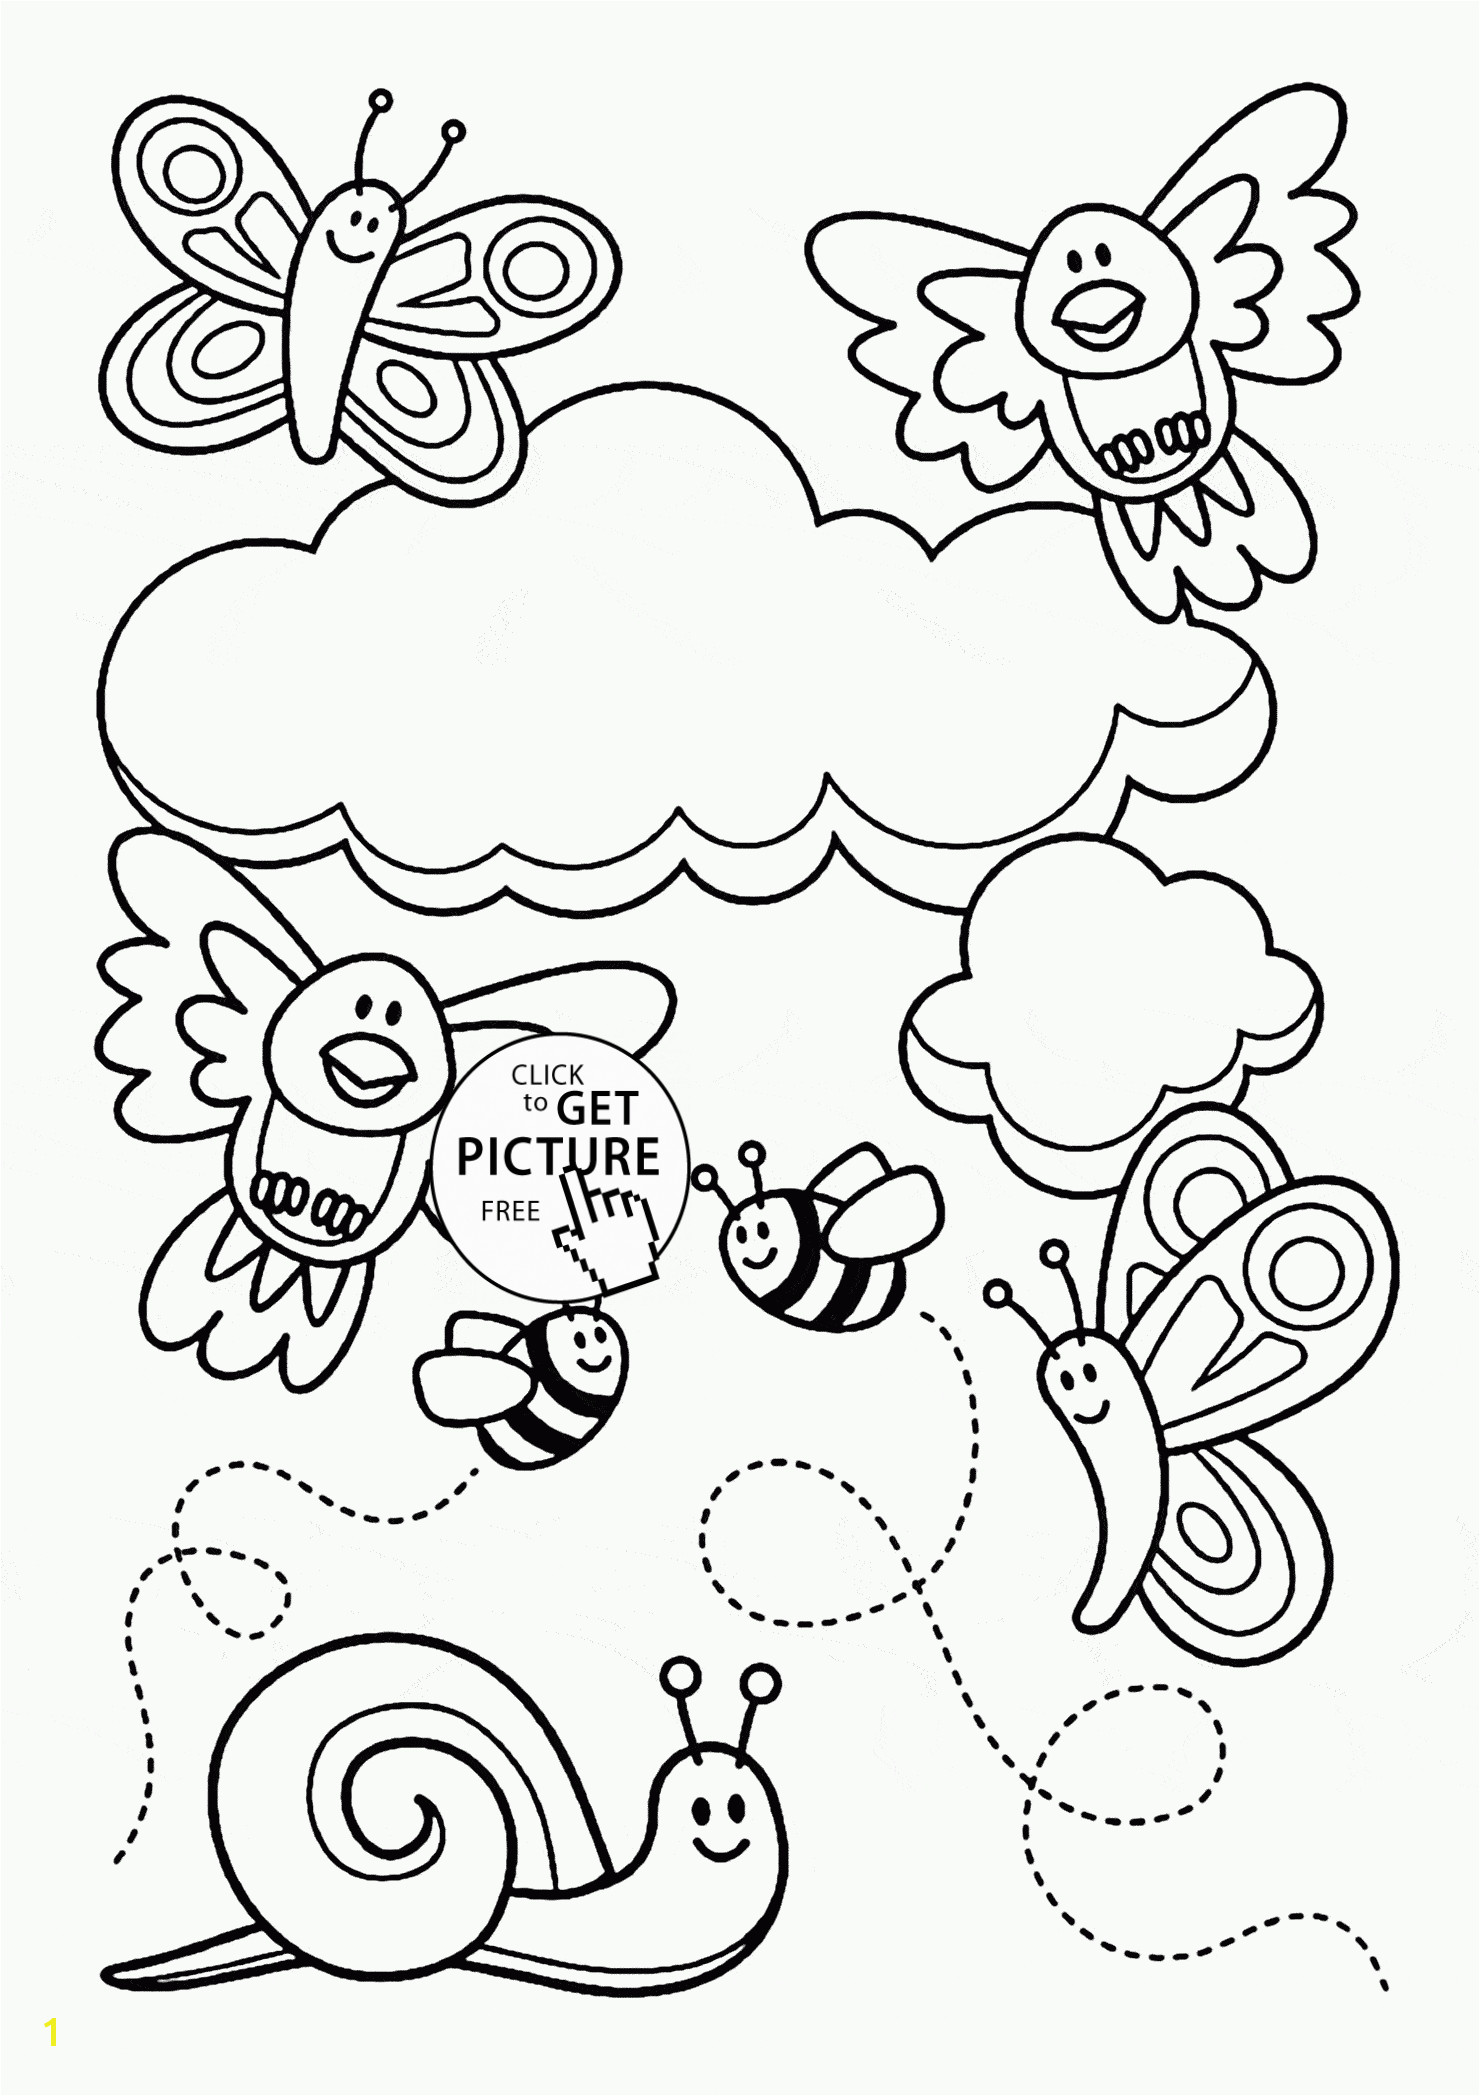 Awesome Free Printable Spring Coloring Pages for Adults Collection 7 s Spring Scene Coloring